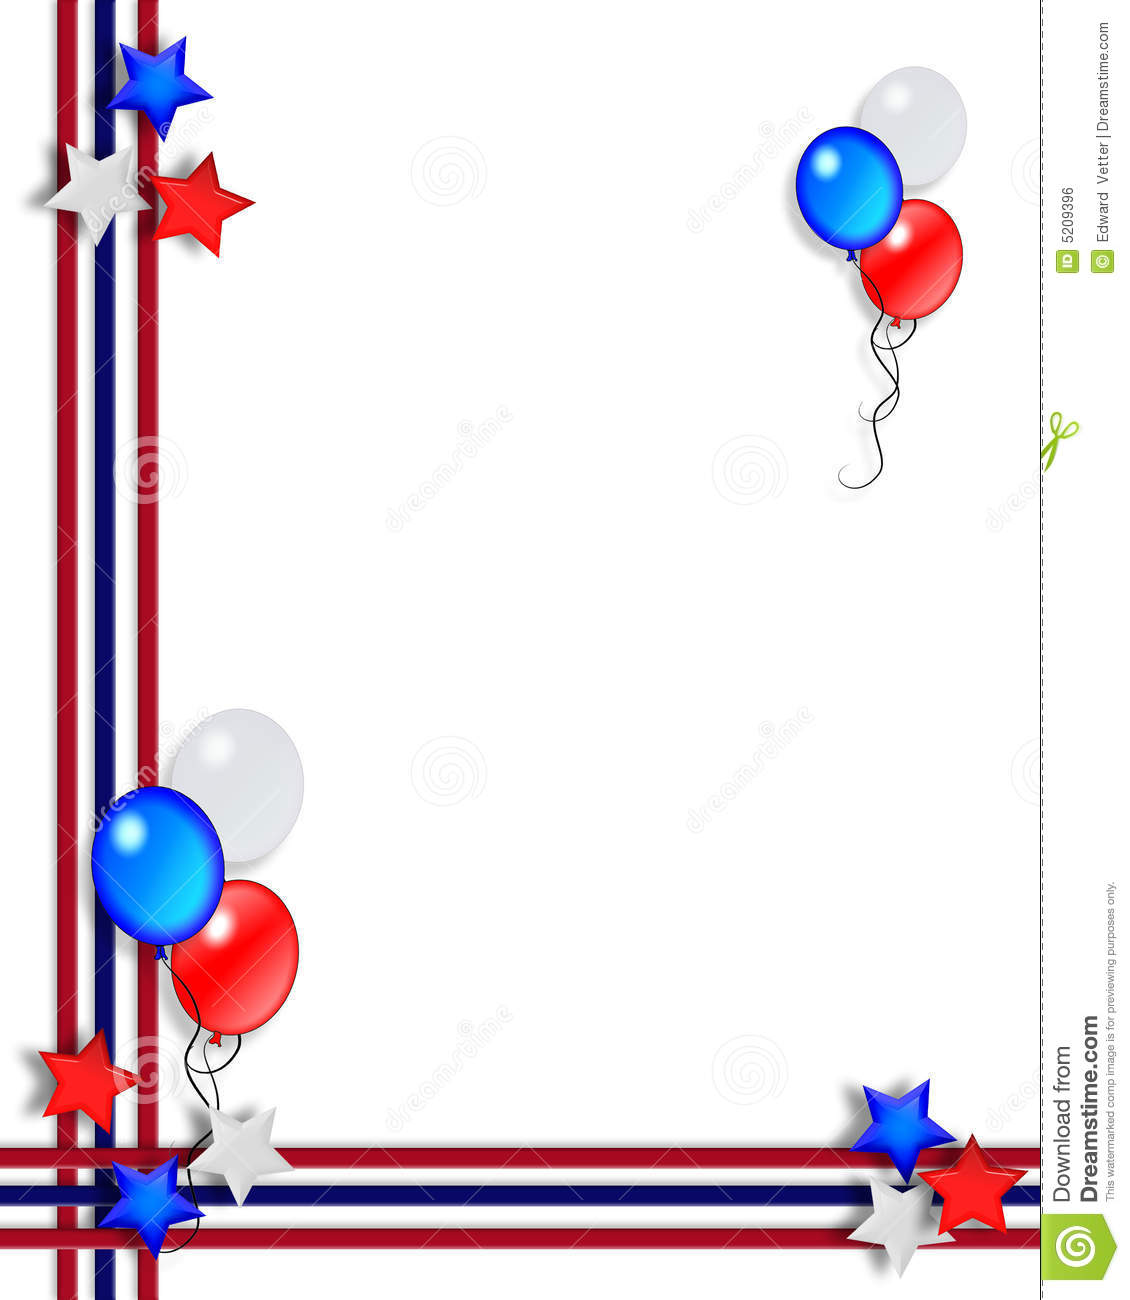 Dimensional Illustration Of Balloons Stars And Stripes For Patriotic